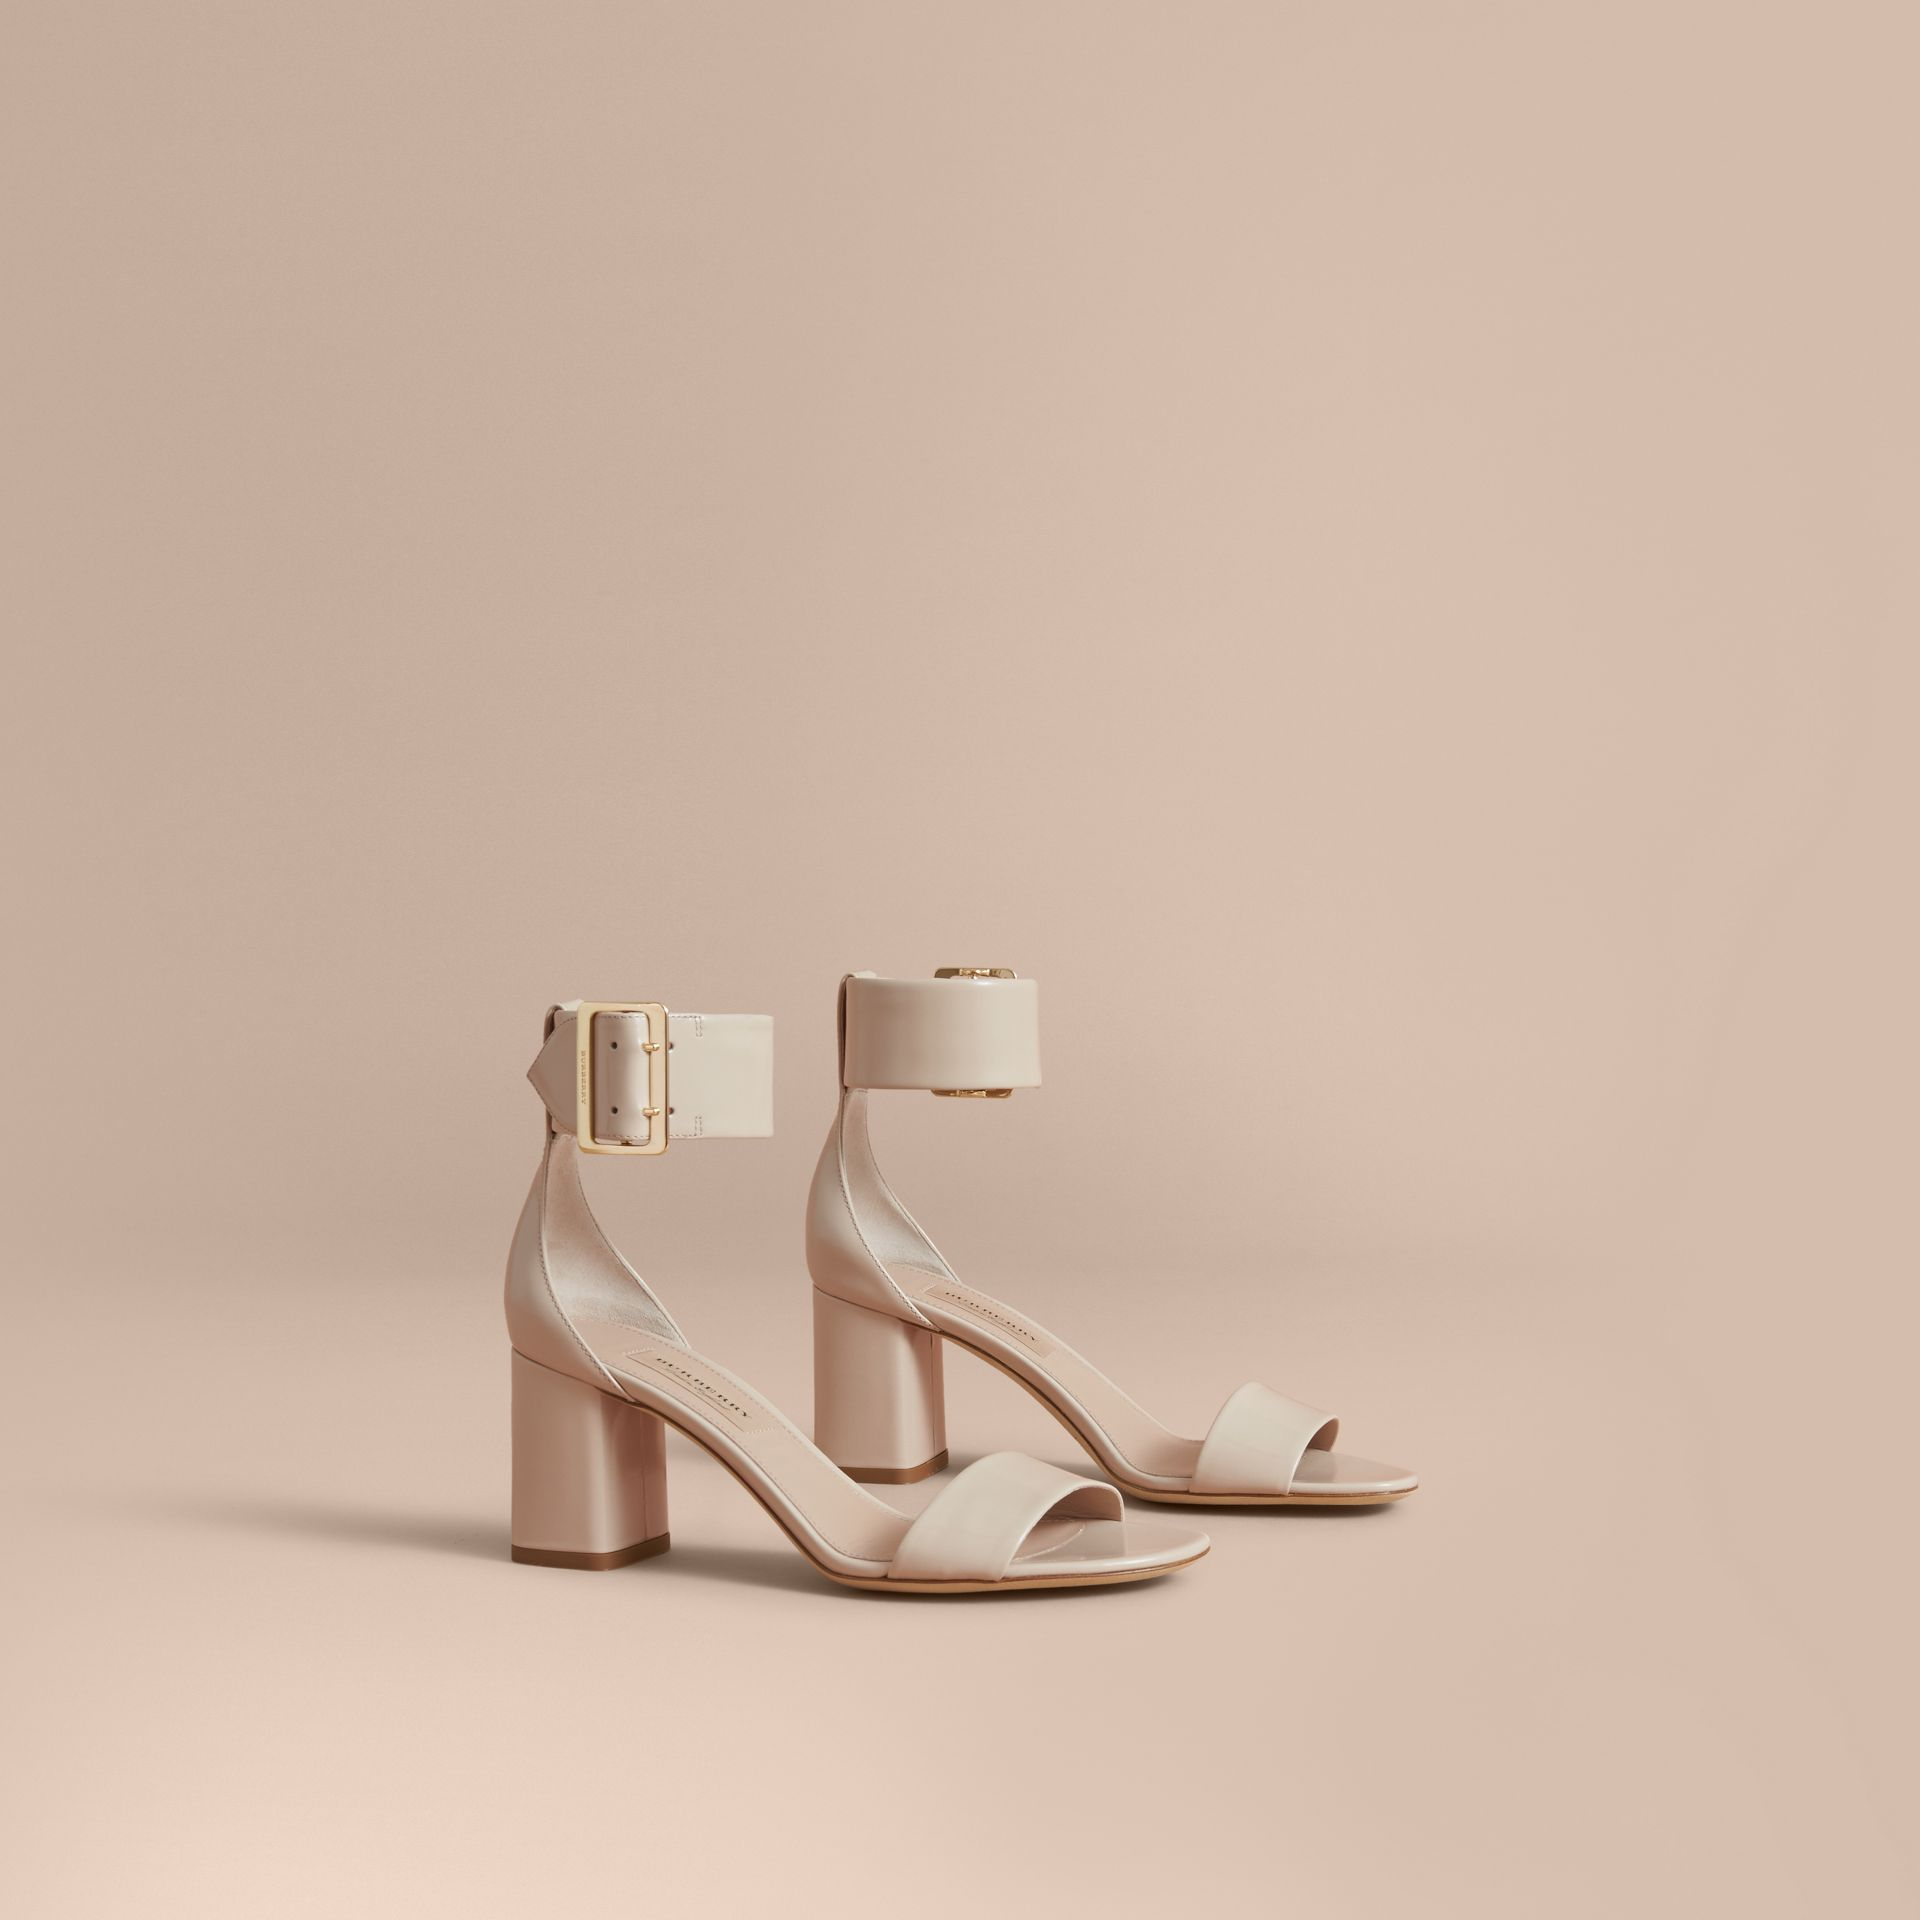 Buckle Detail Patent Leather Sandals in Pale Taupe - Women | Burberry - gallery image 1